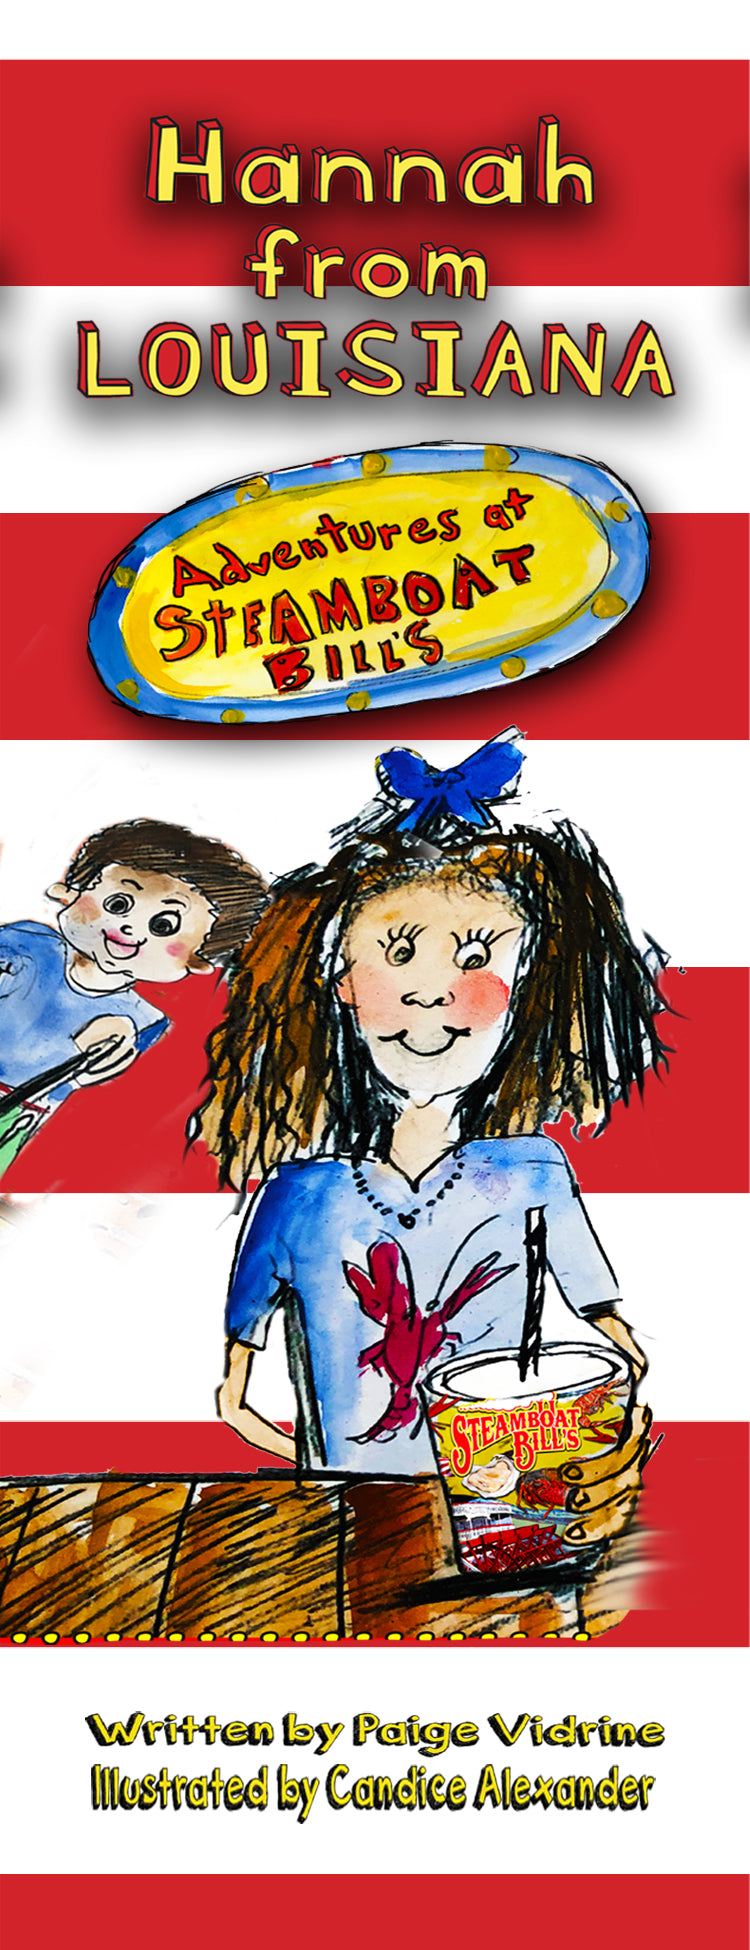 HANNAH from louisiana adventures at steamboat bills seafood restaurant in lake charles louisiana childrens book mark written by paige vidrine and illustrated by candice alexander